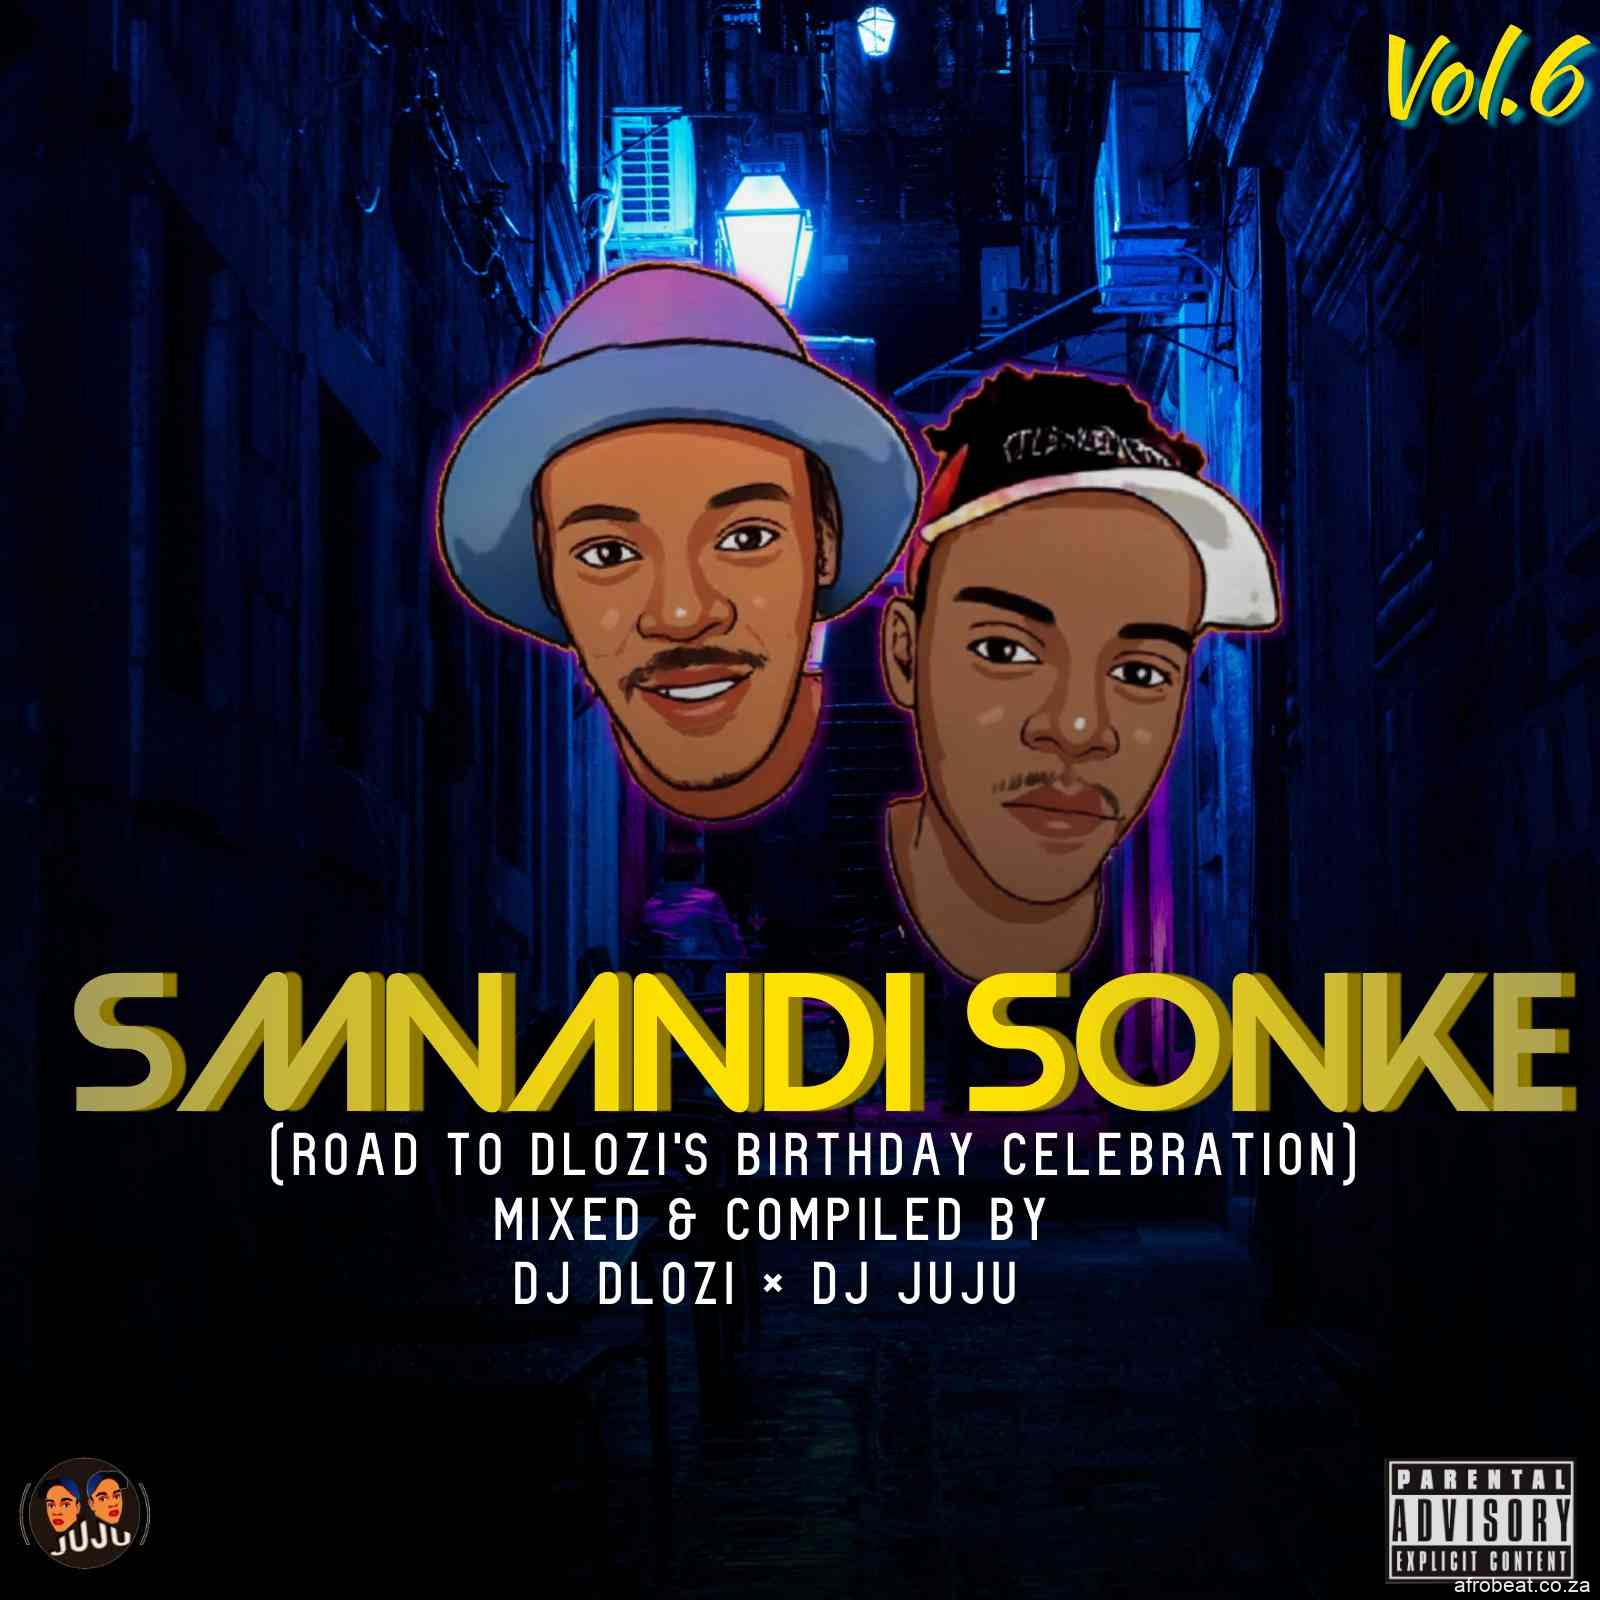 1620327688850 Copy of Cool Album Cover Made with PosterMyWall - DJ Dlozi & DJ Juju – Smnandi Sonke Vol. 6 (Birthday Mix)